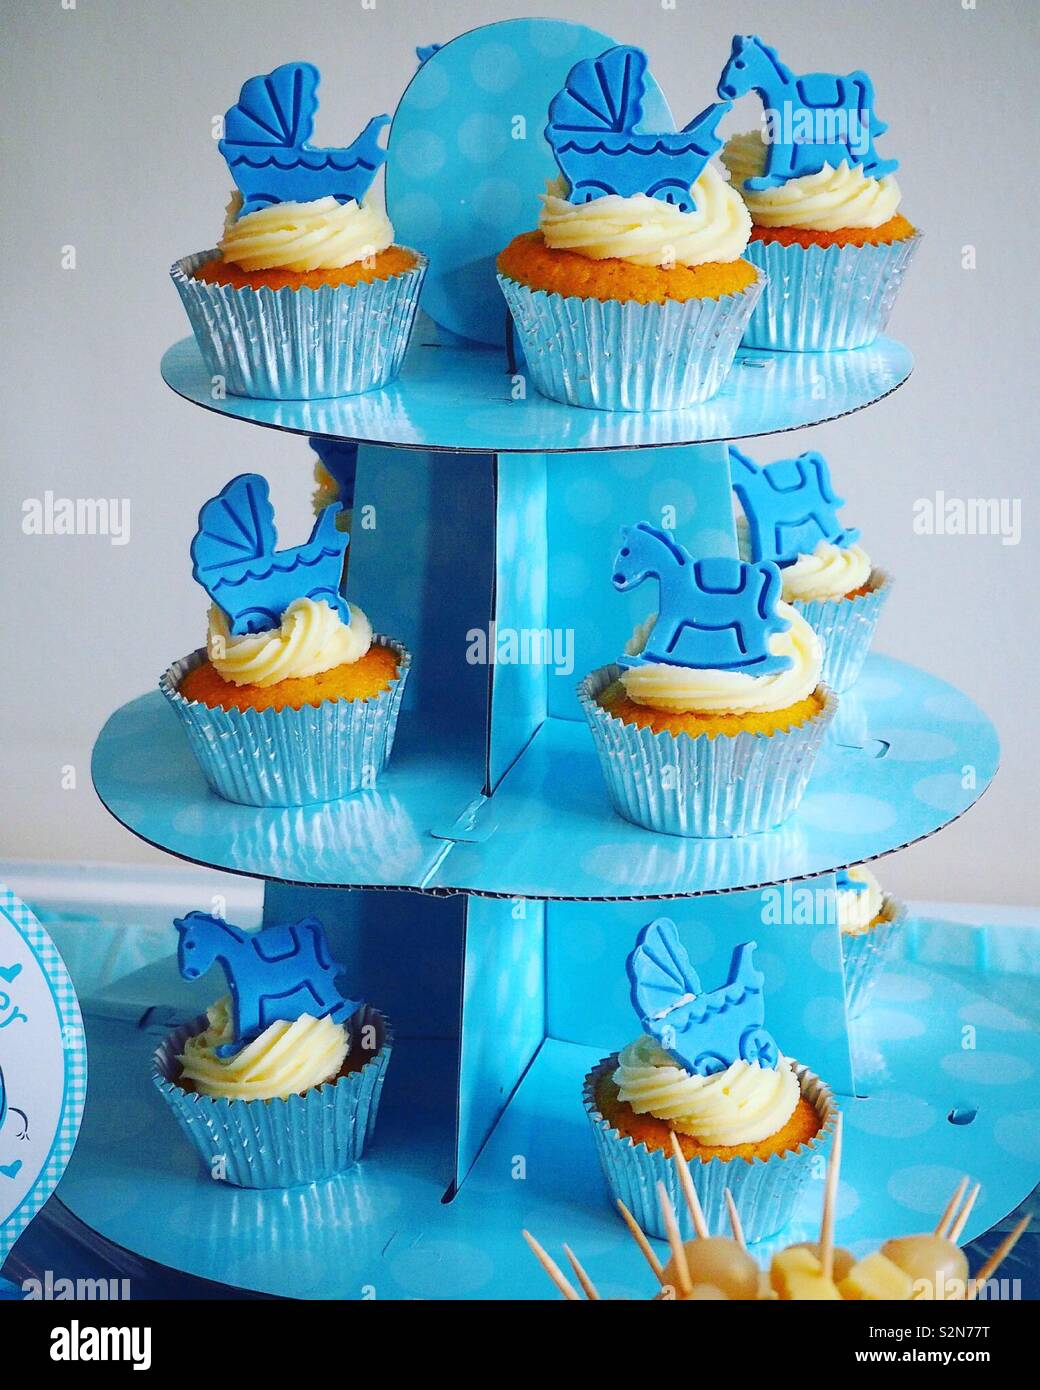 Cupcakes at a blue baby shower - Stock Image